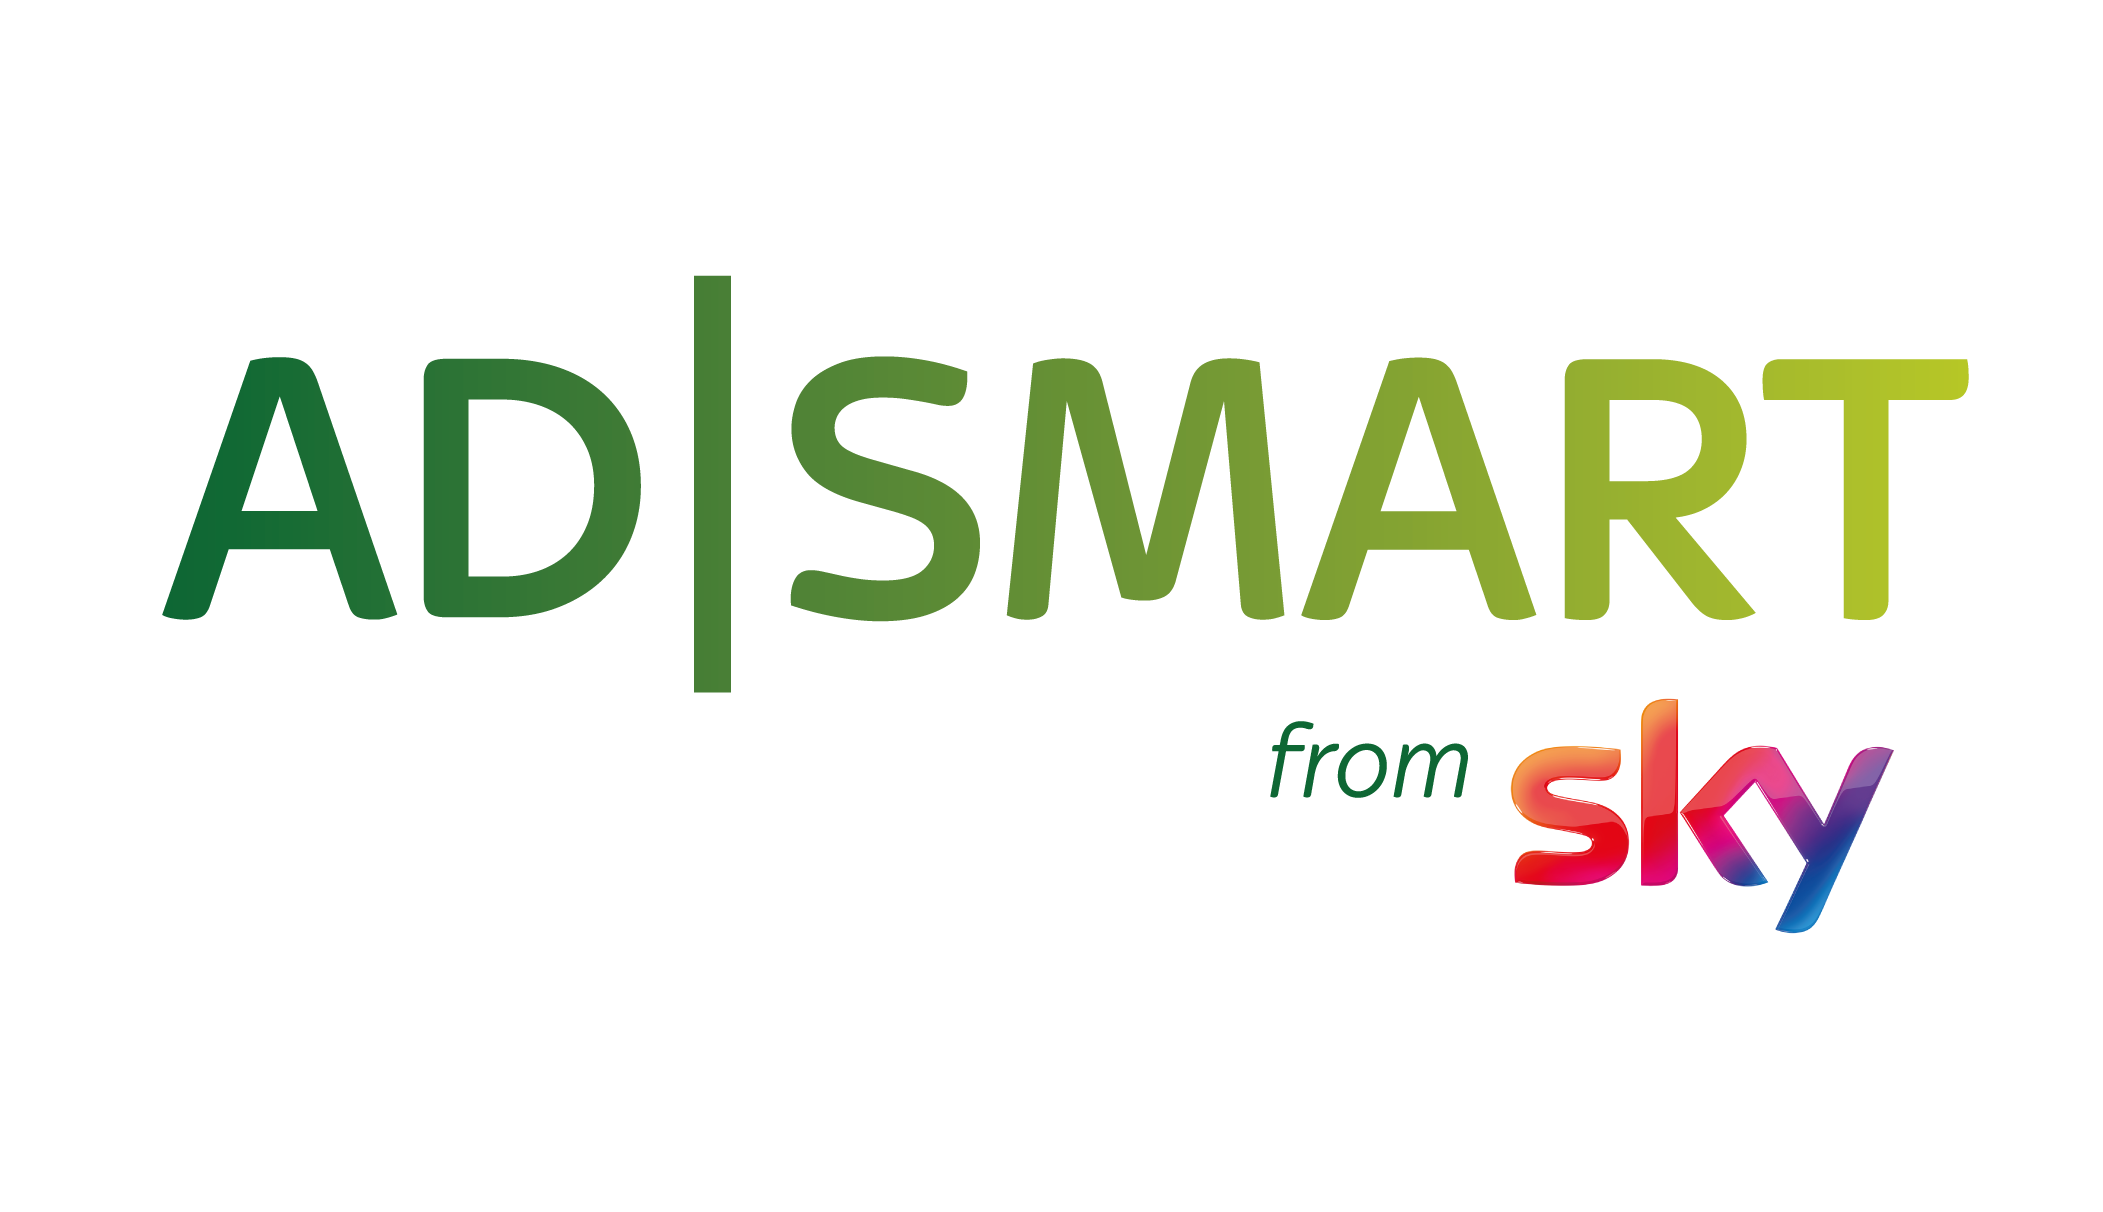 AdSmart-From-Sky-Logo-Colour.png